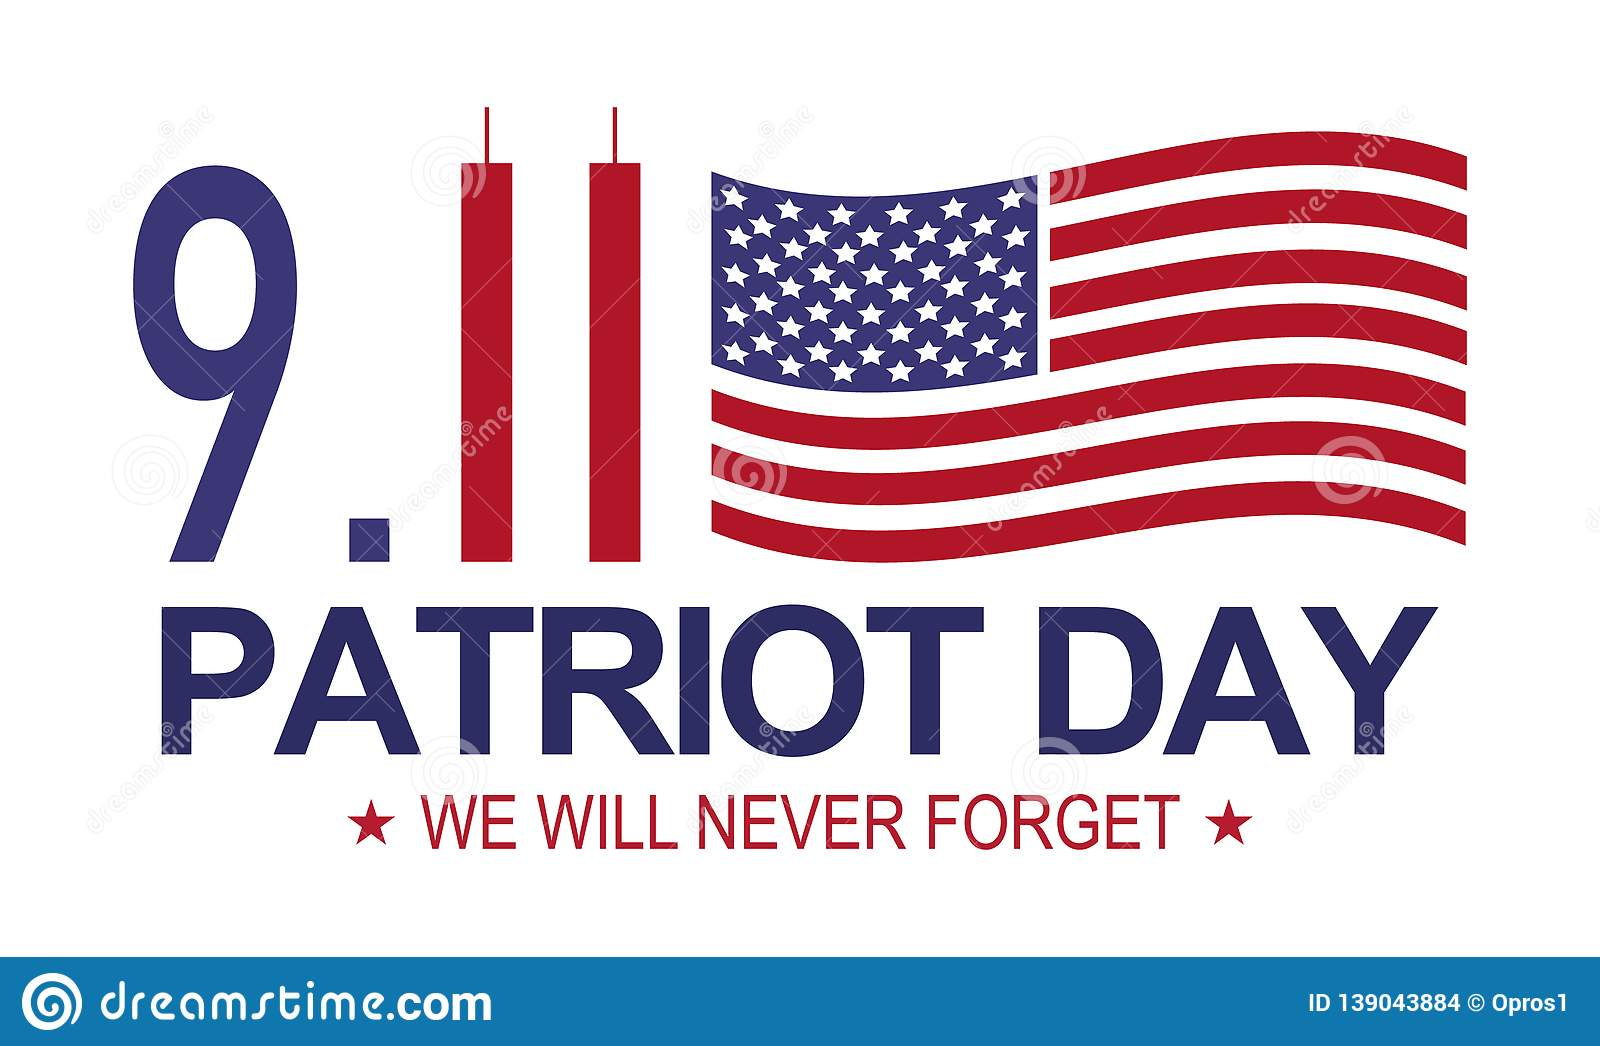 Patriot Day 9 11 Memorial Day We Will Never Forget